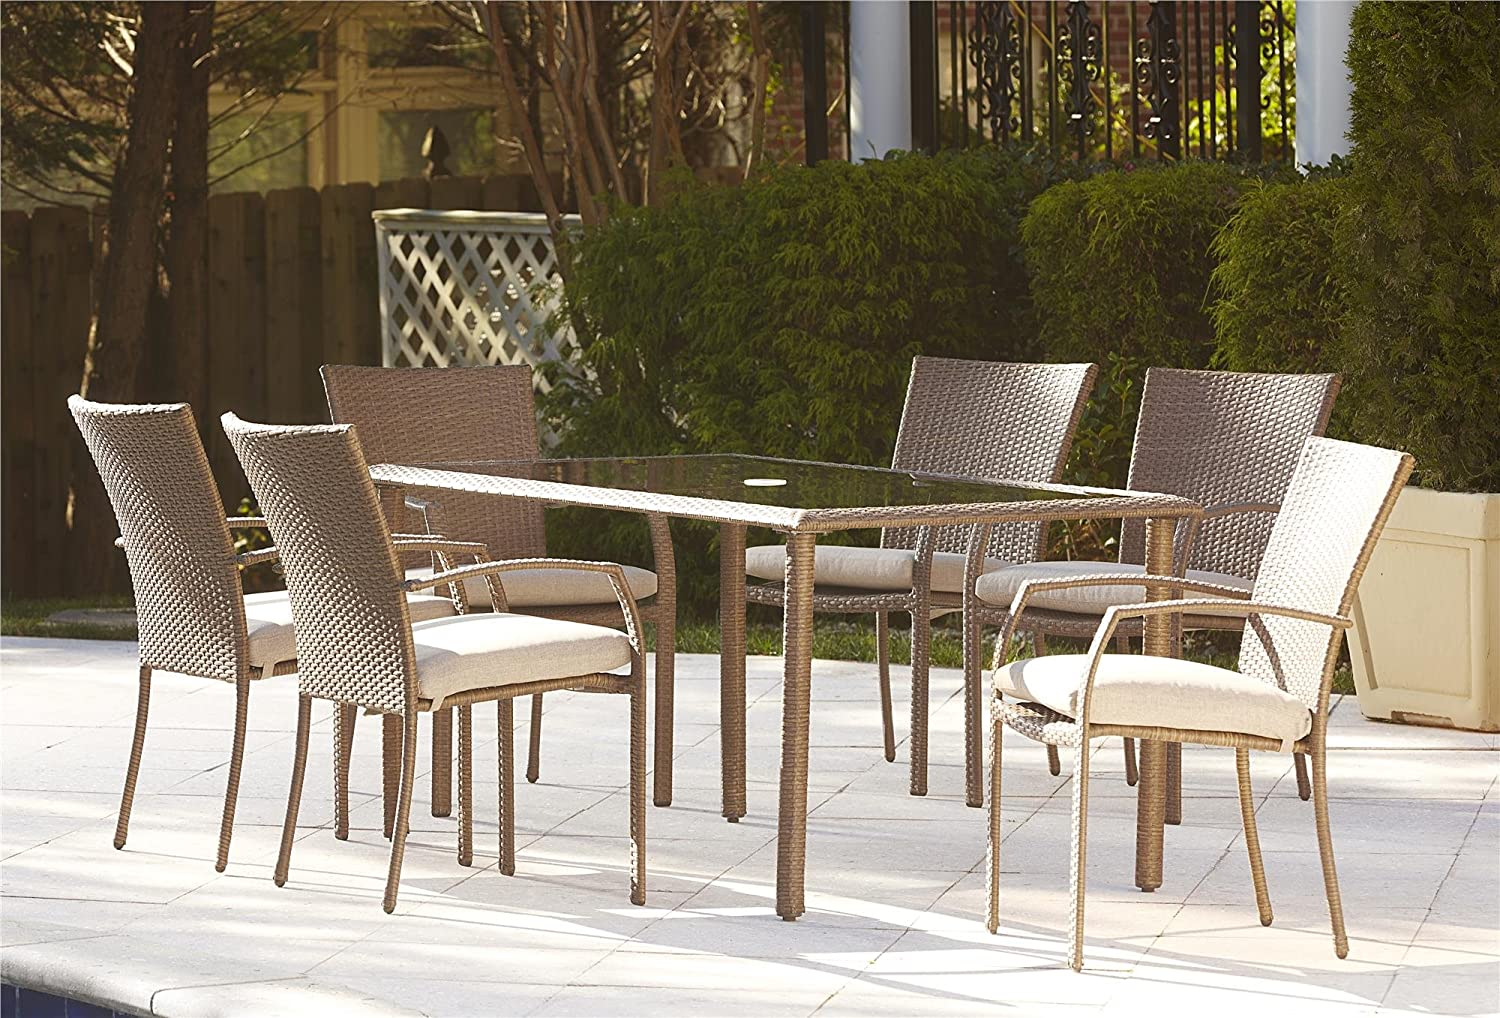 textured glass prod dining garden outdoor pieces itm harrison oasis chair set patio top with